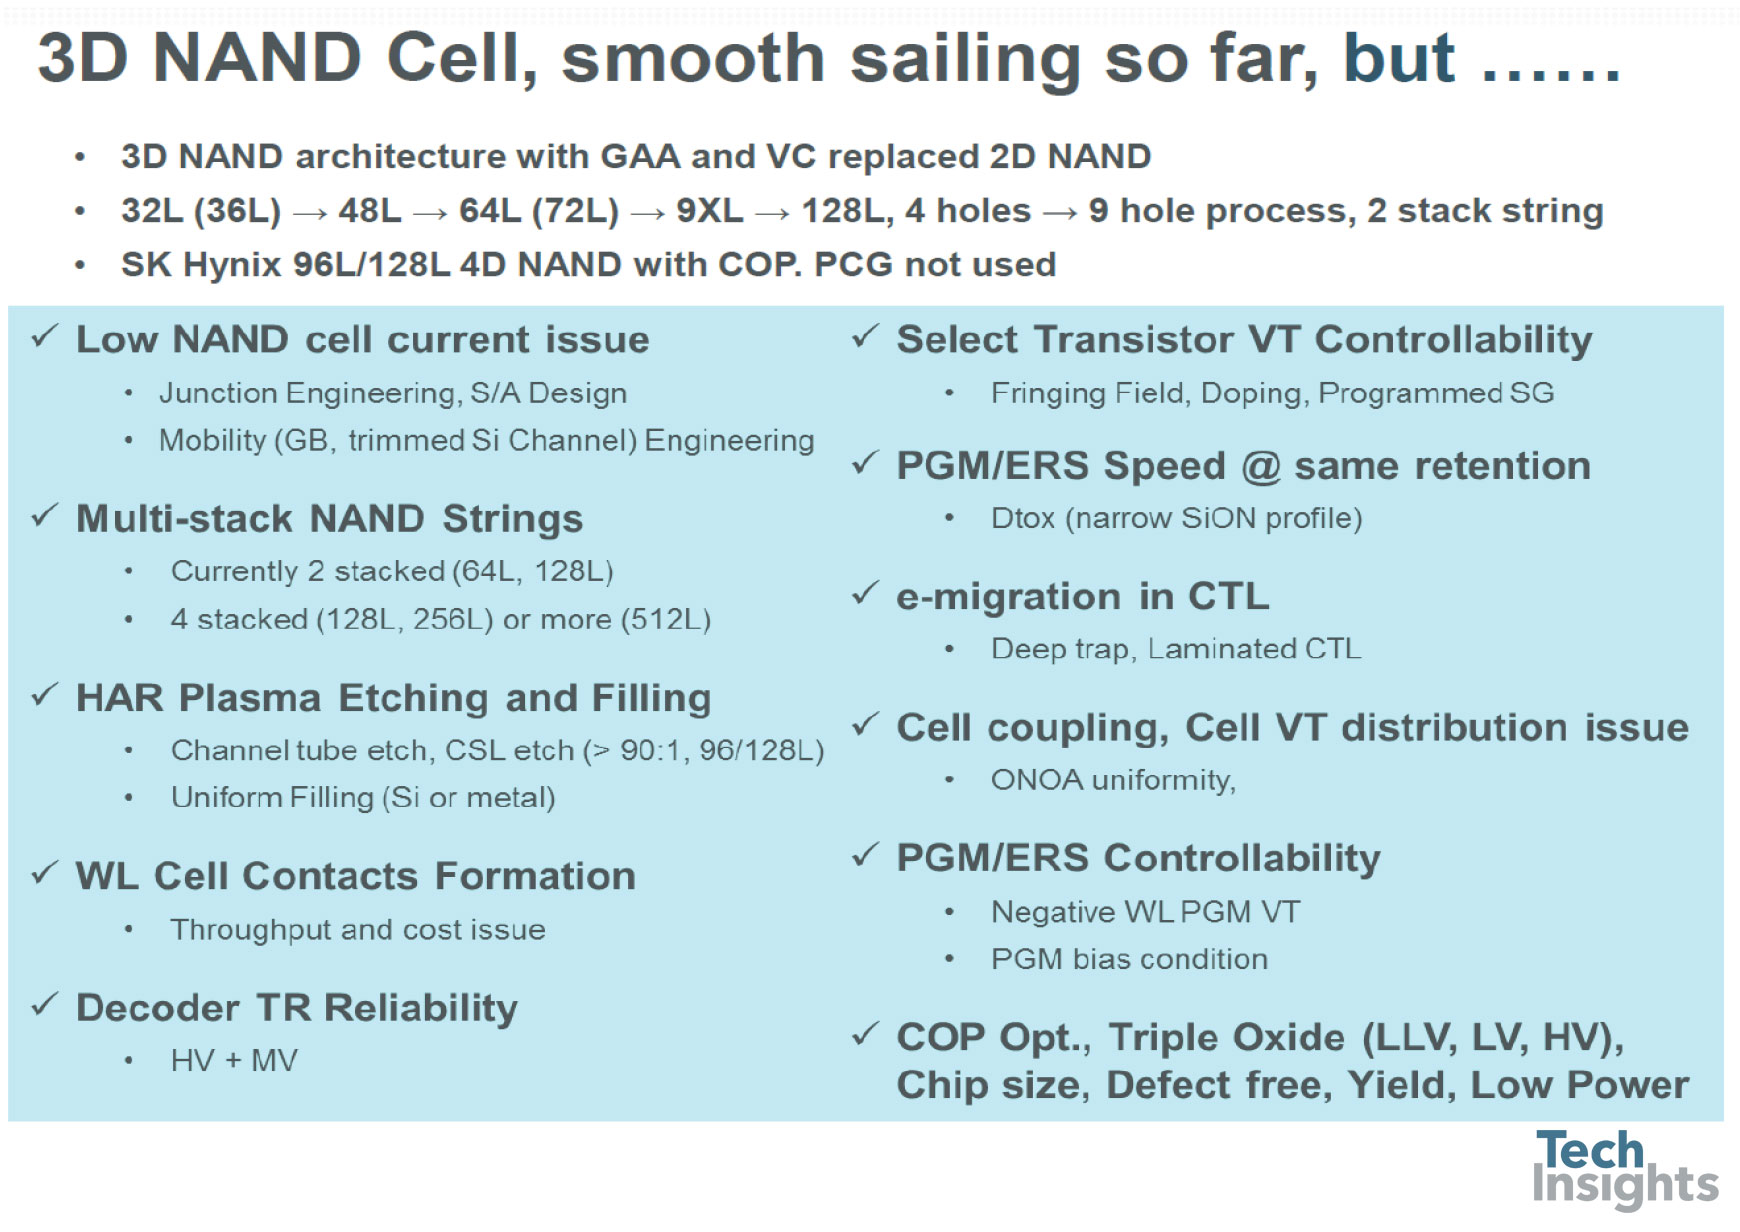 3D NAND cell, smooth sailing so far, but…